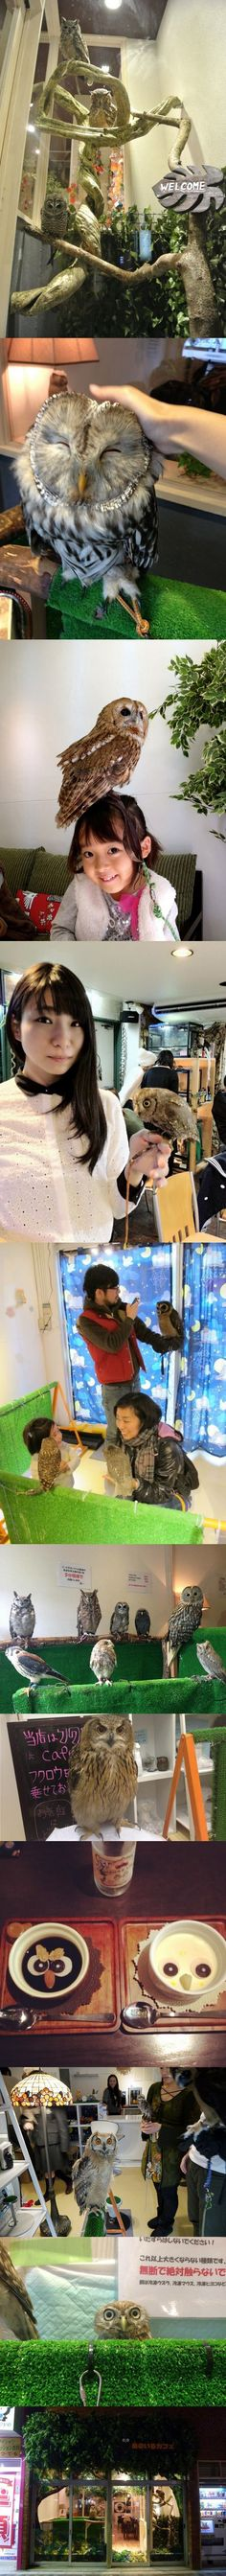 Owl Cafe in Japan  I've never really thought about traveling to Japan but now it's my life mission.